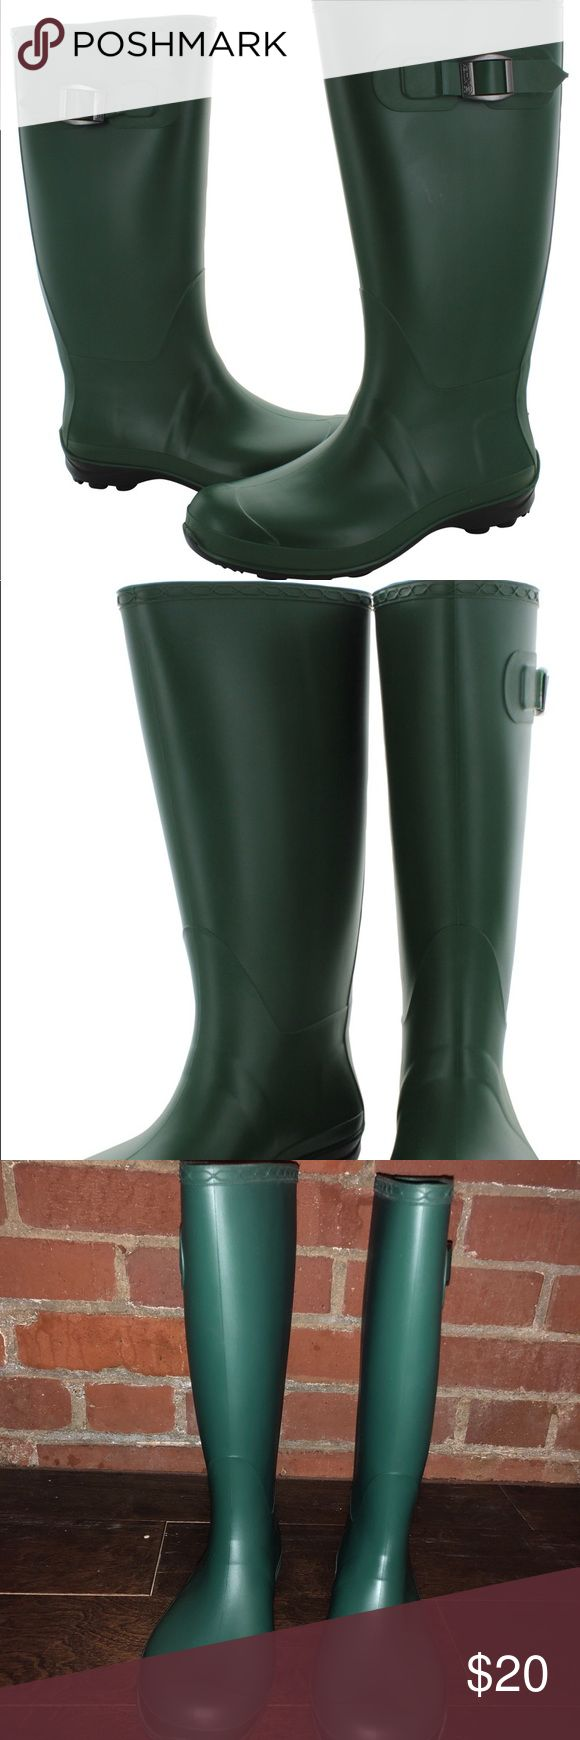 Kamik Green Olivia Rain boots! Size 7! These beautiful/ comfortable Kamik Olivia rain boots are in like new condition, barely worn once! They're the perfect combination of stylish and practical for rainy weather! Size 7. Waterproof synthetic rubber upper. Decorative side buckle. Breathable textile lining. Kamik Shoes Winter & Rain Boots